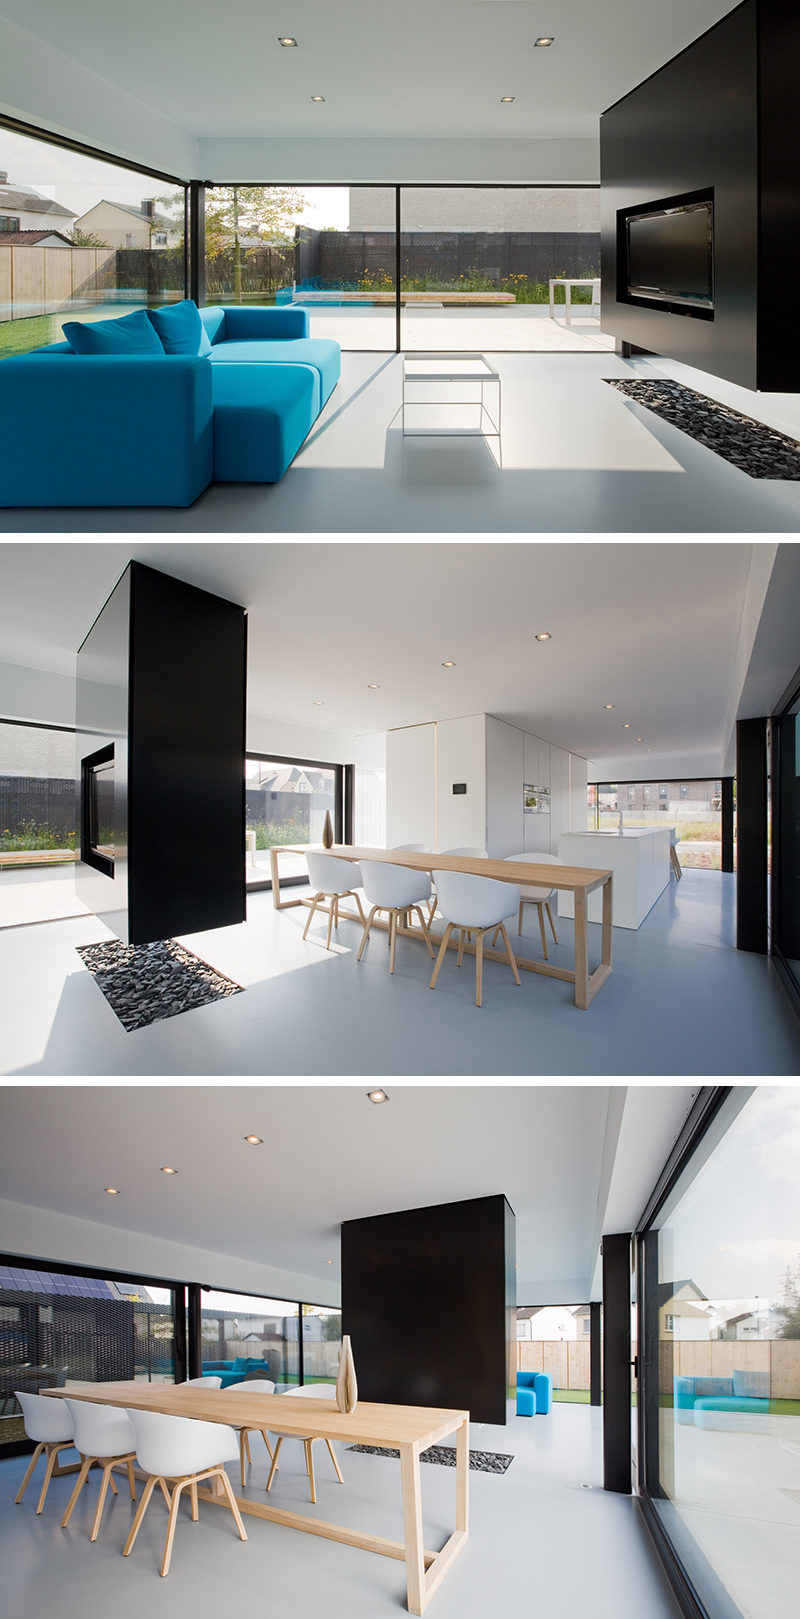 Interior Design Ideas - A suspended TV wall and room divider